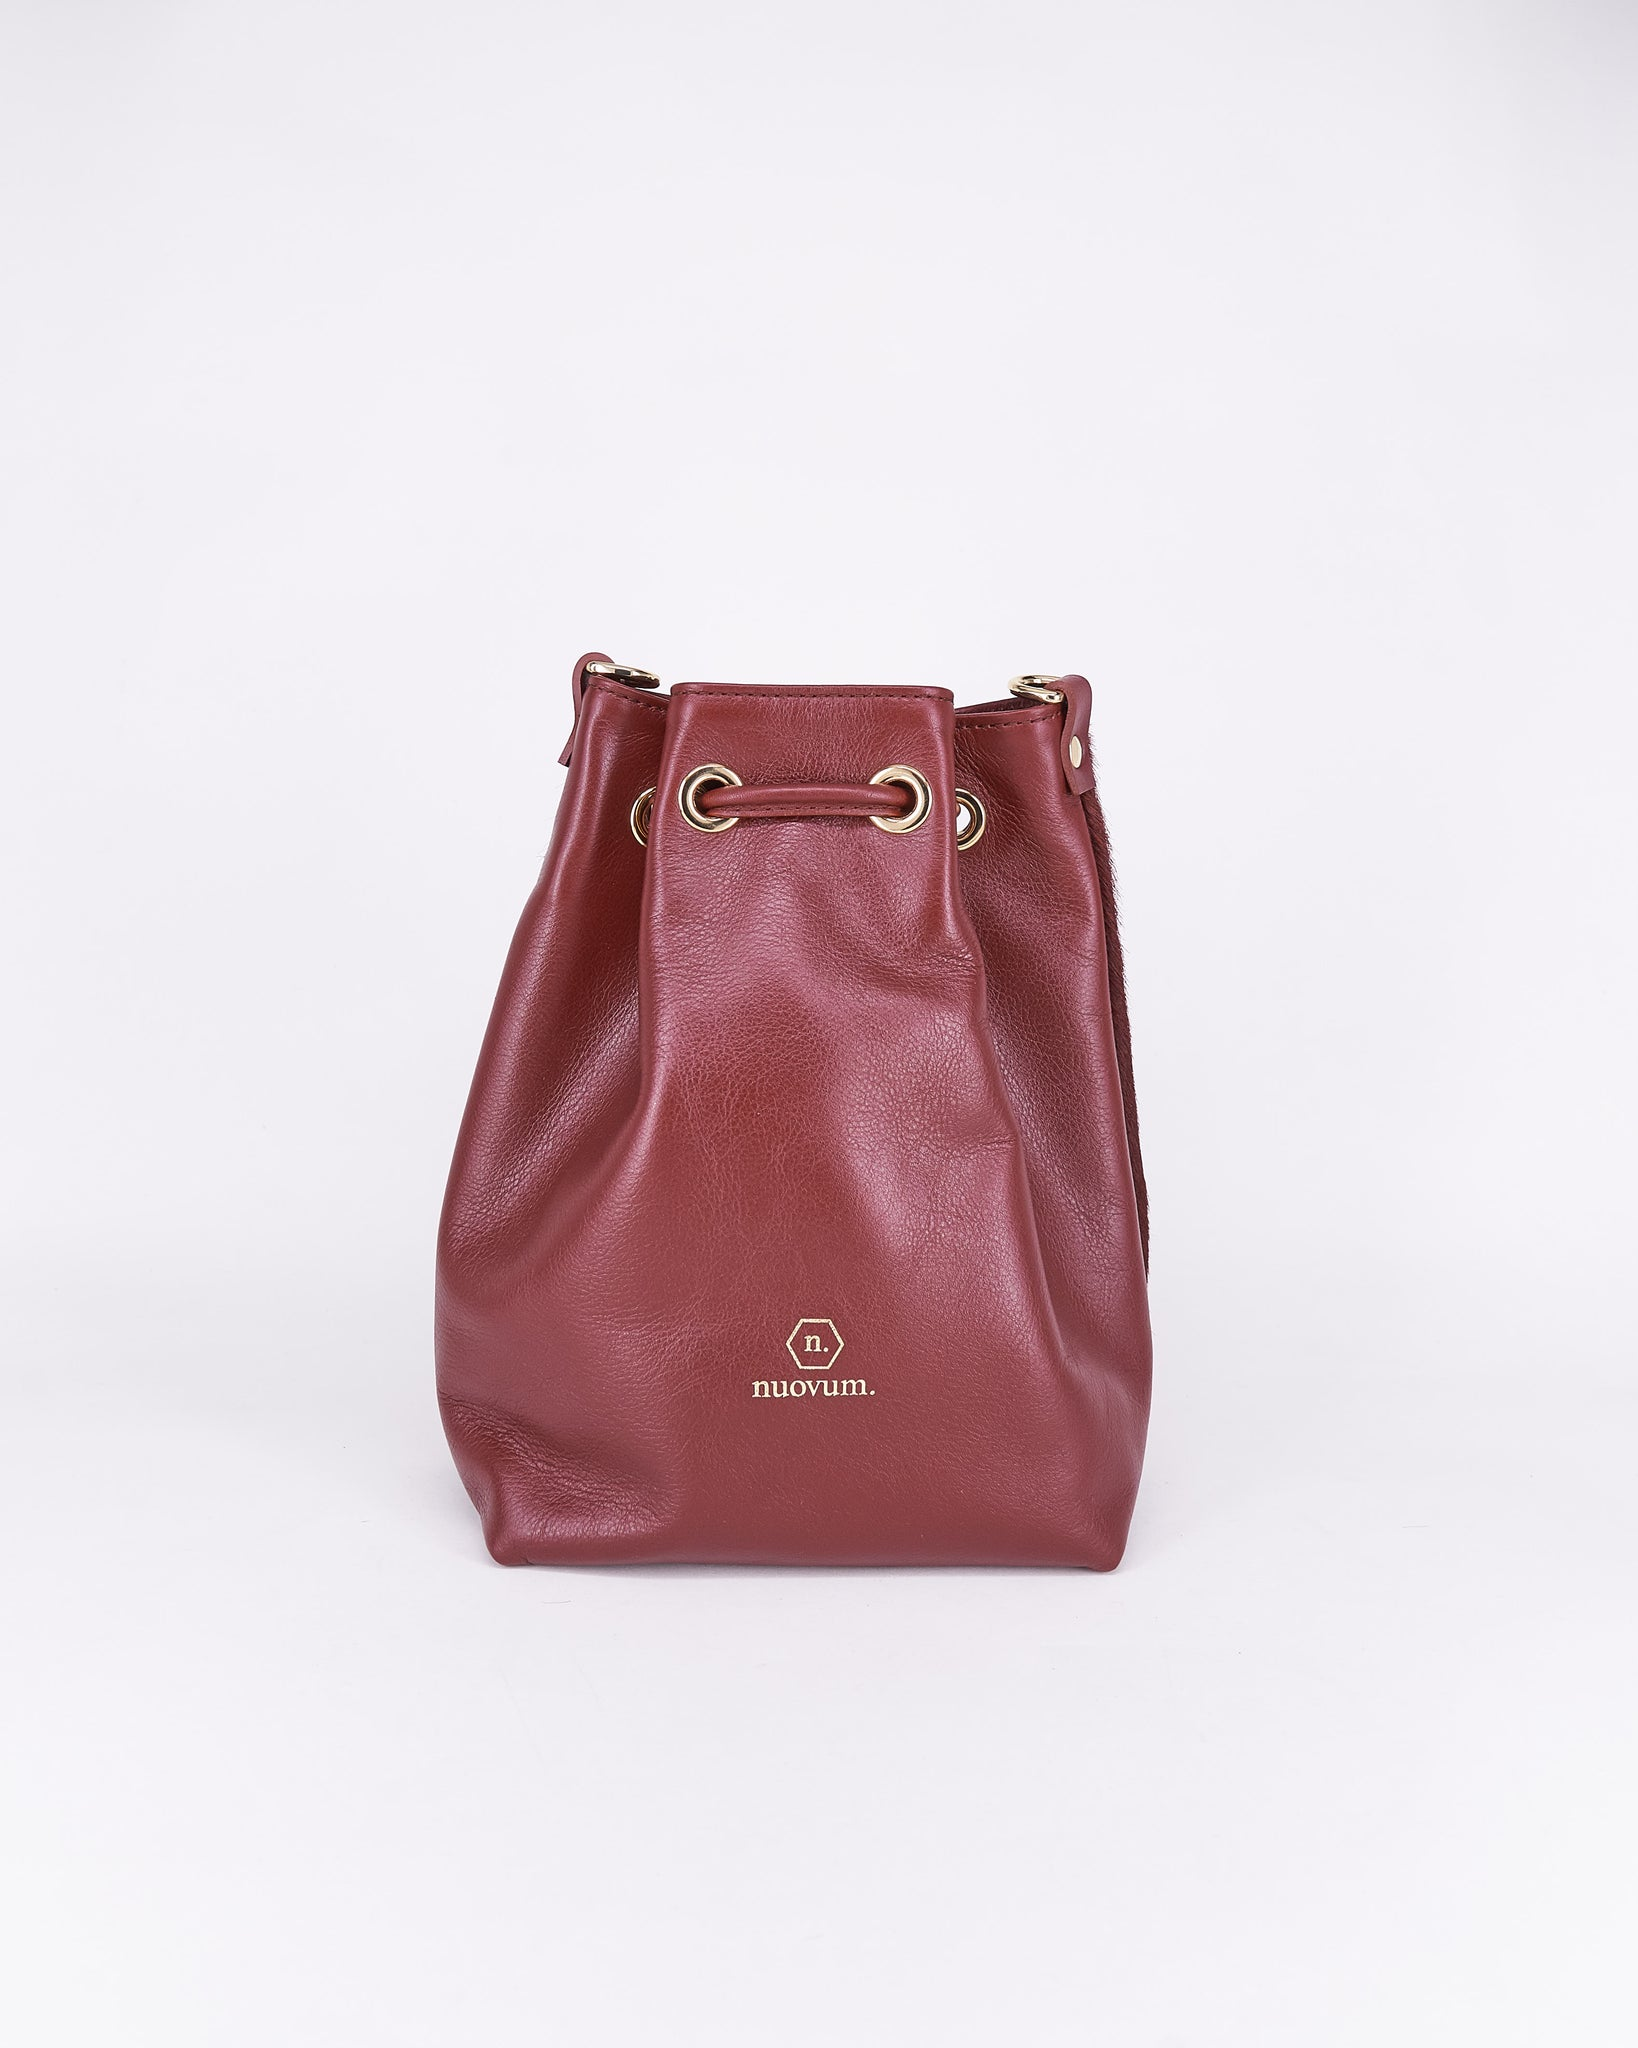 Bag-Nuo Sac-Nuovum-Leather-Bordeaux-localdesigners-Barcelona-Nuovum-Handmade-back